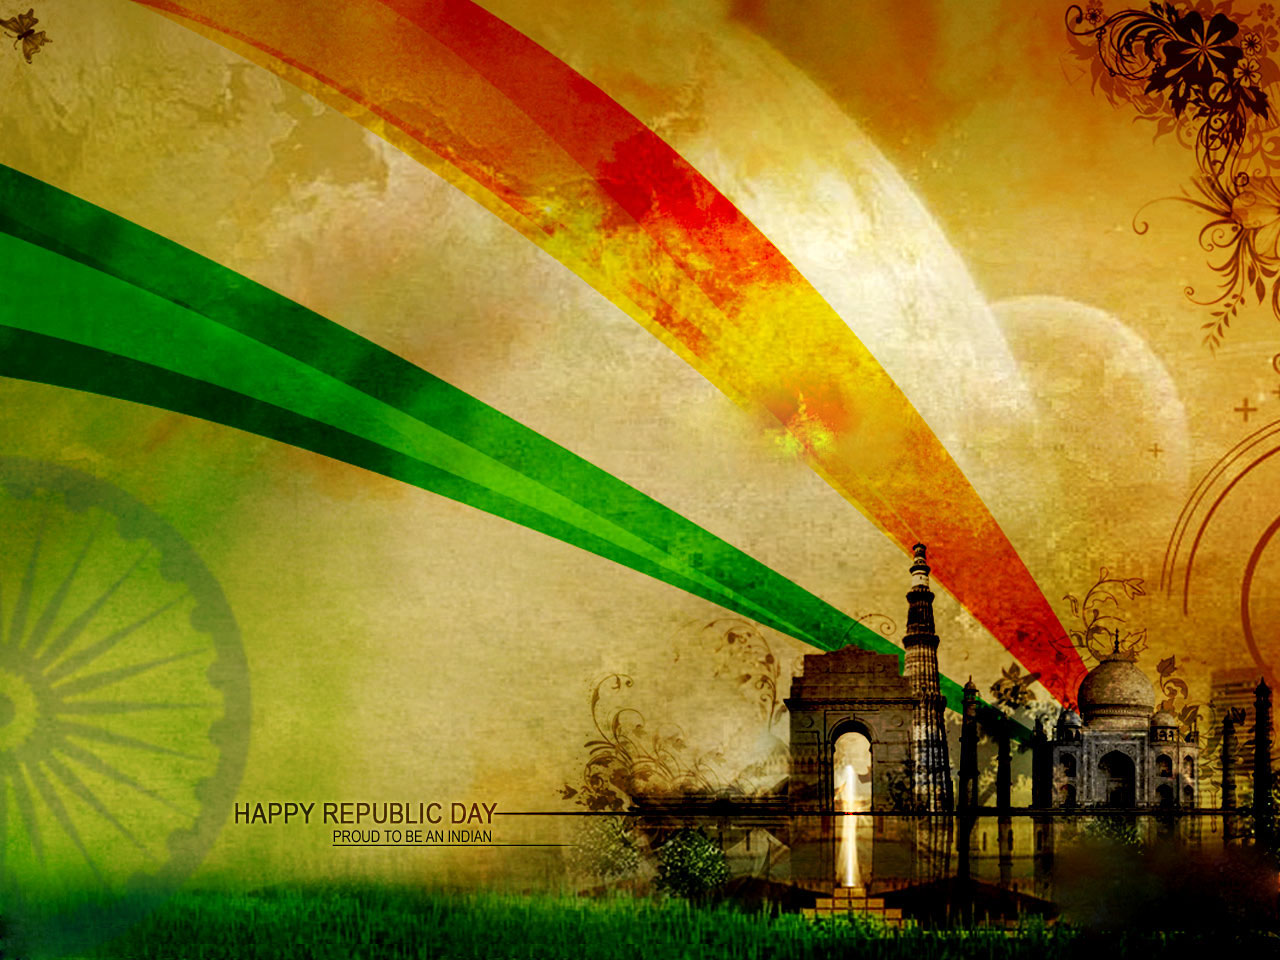 patriotism in india essay Search results school life is wonderful paraphernalia could be nothing more than a sincere devotion for making a patriotic india patriotism need not have a mass motive, it need not be national.